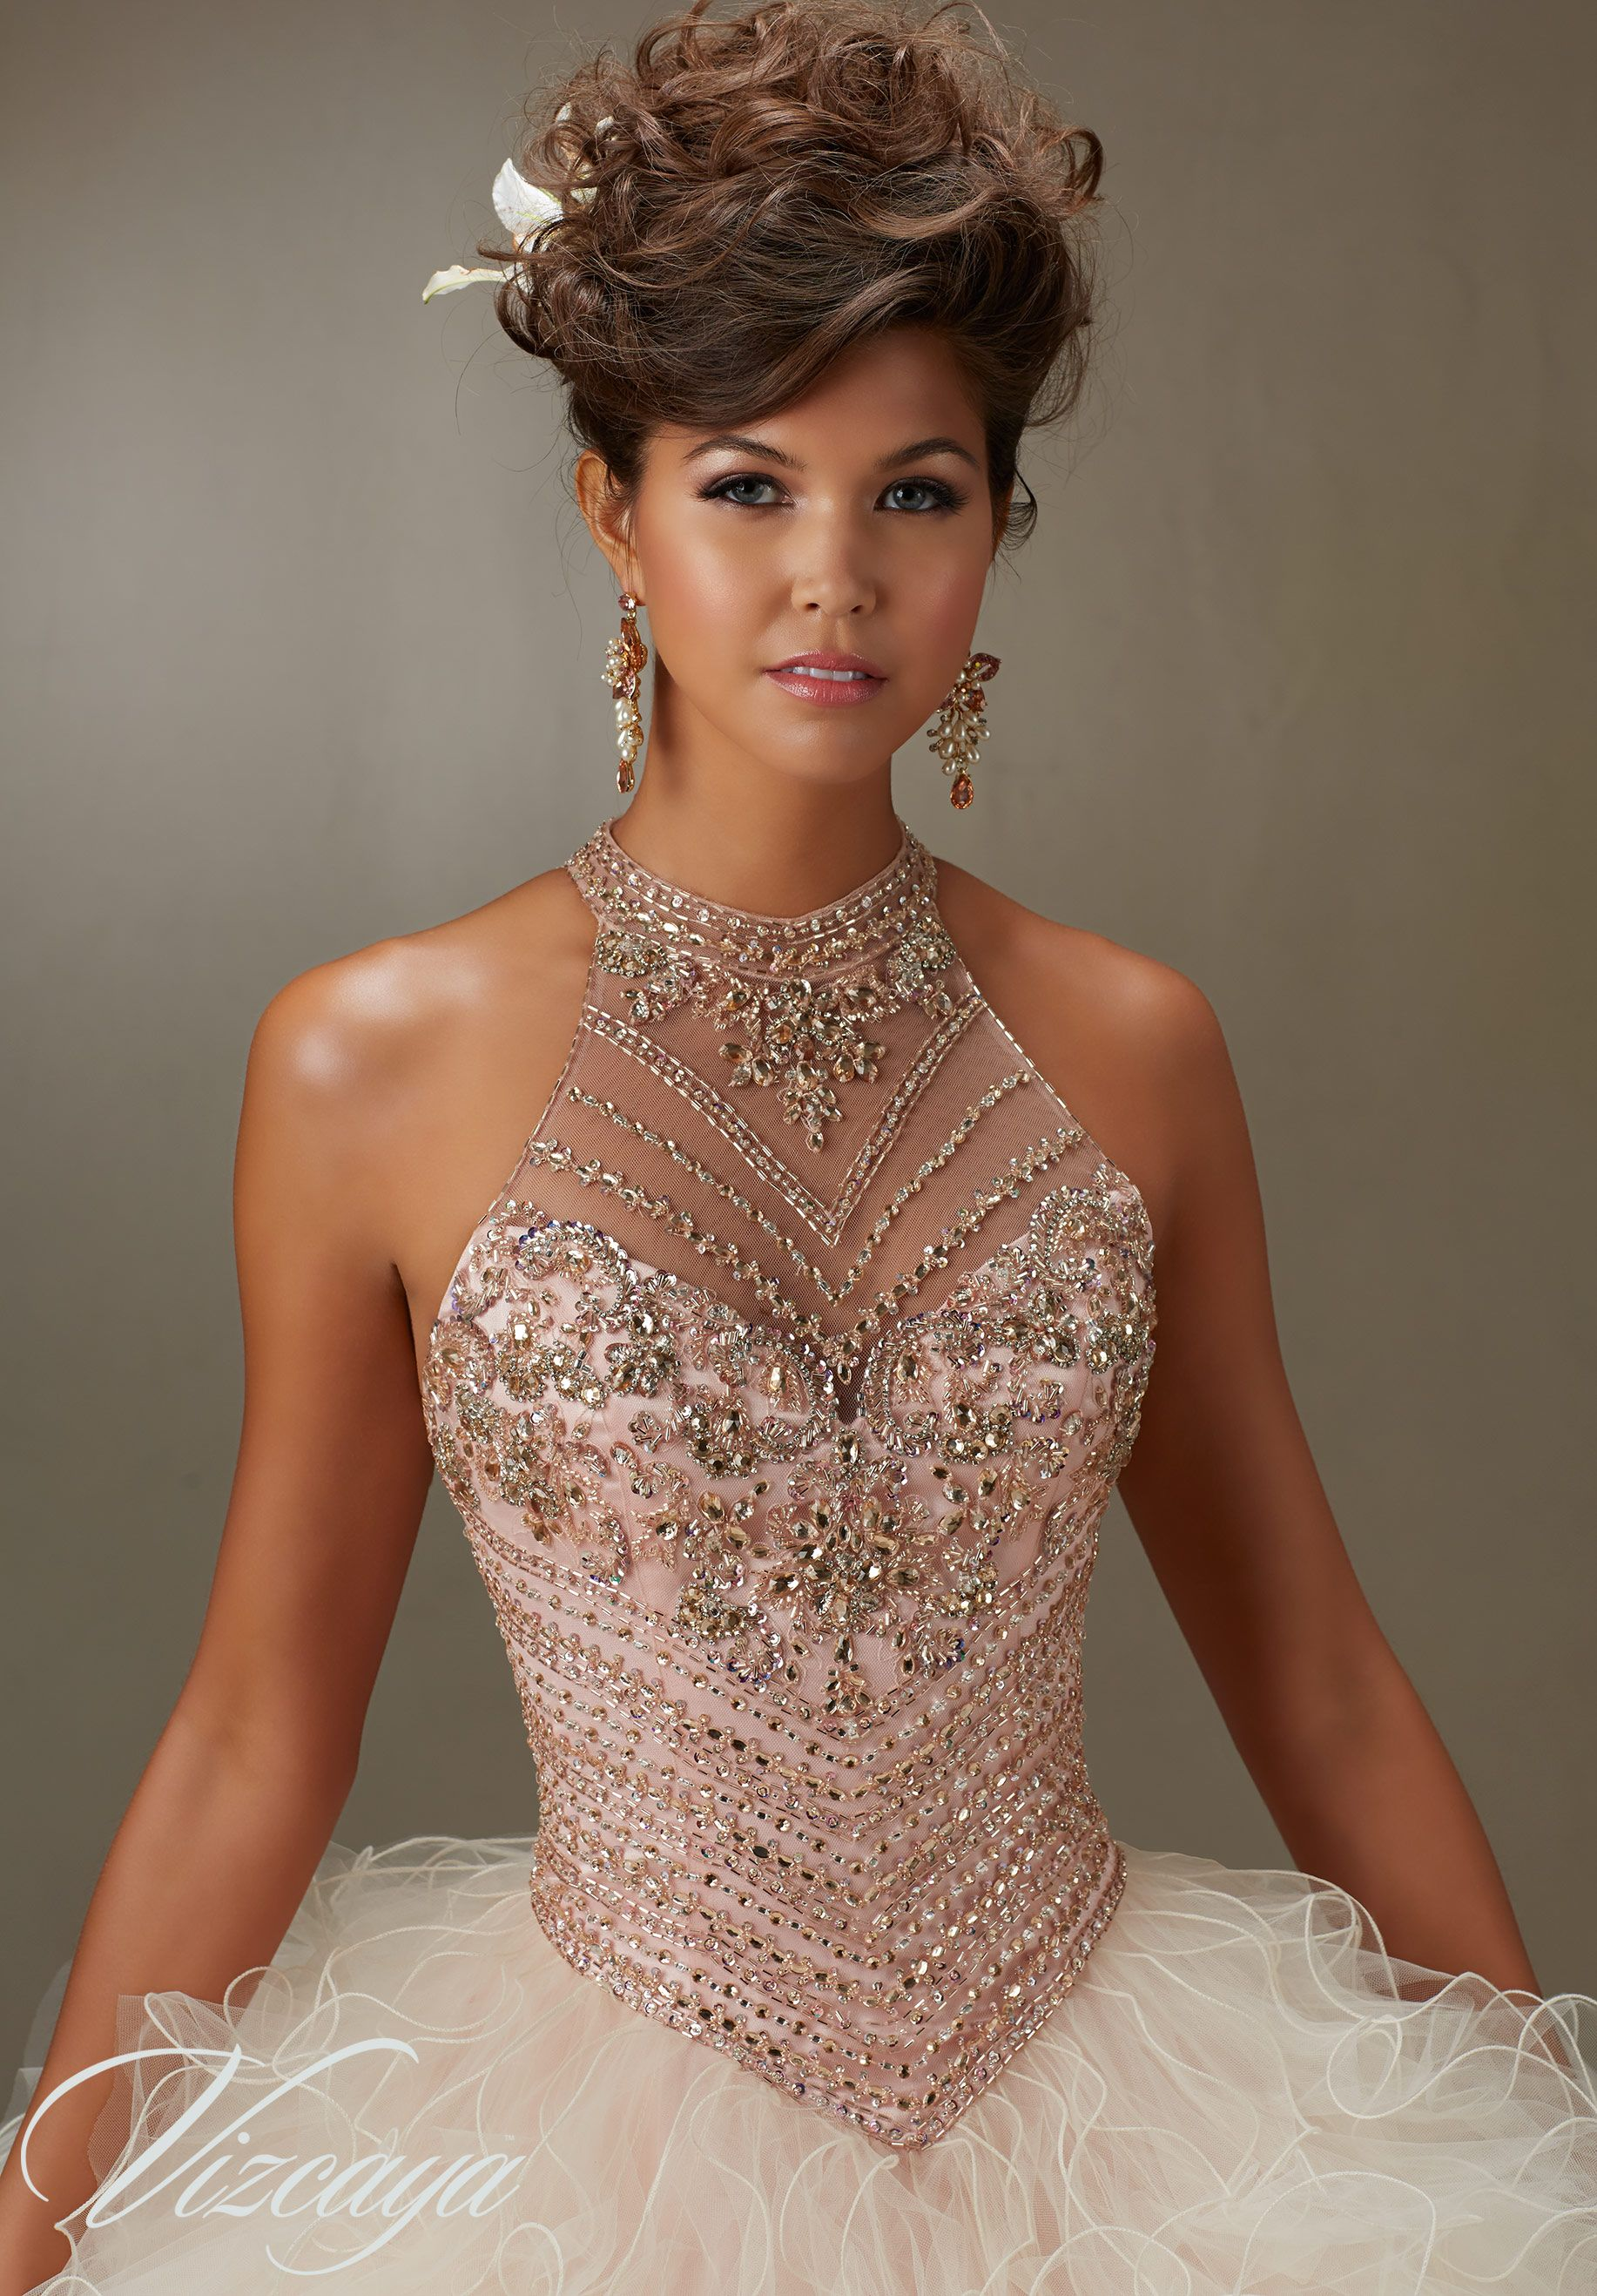 Jeweled Beading on a Ruffled Tulle Quinceañera Dress in 2019 ... cc39e25d6699